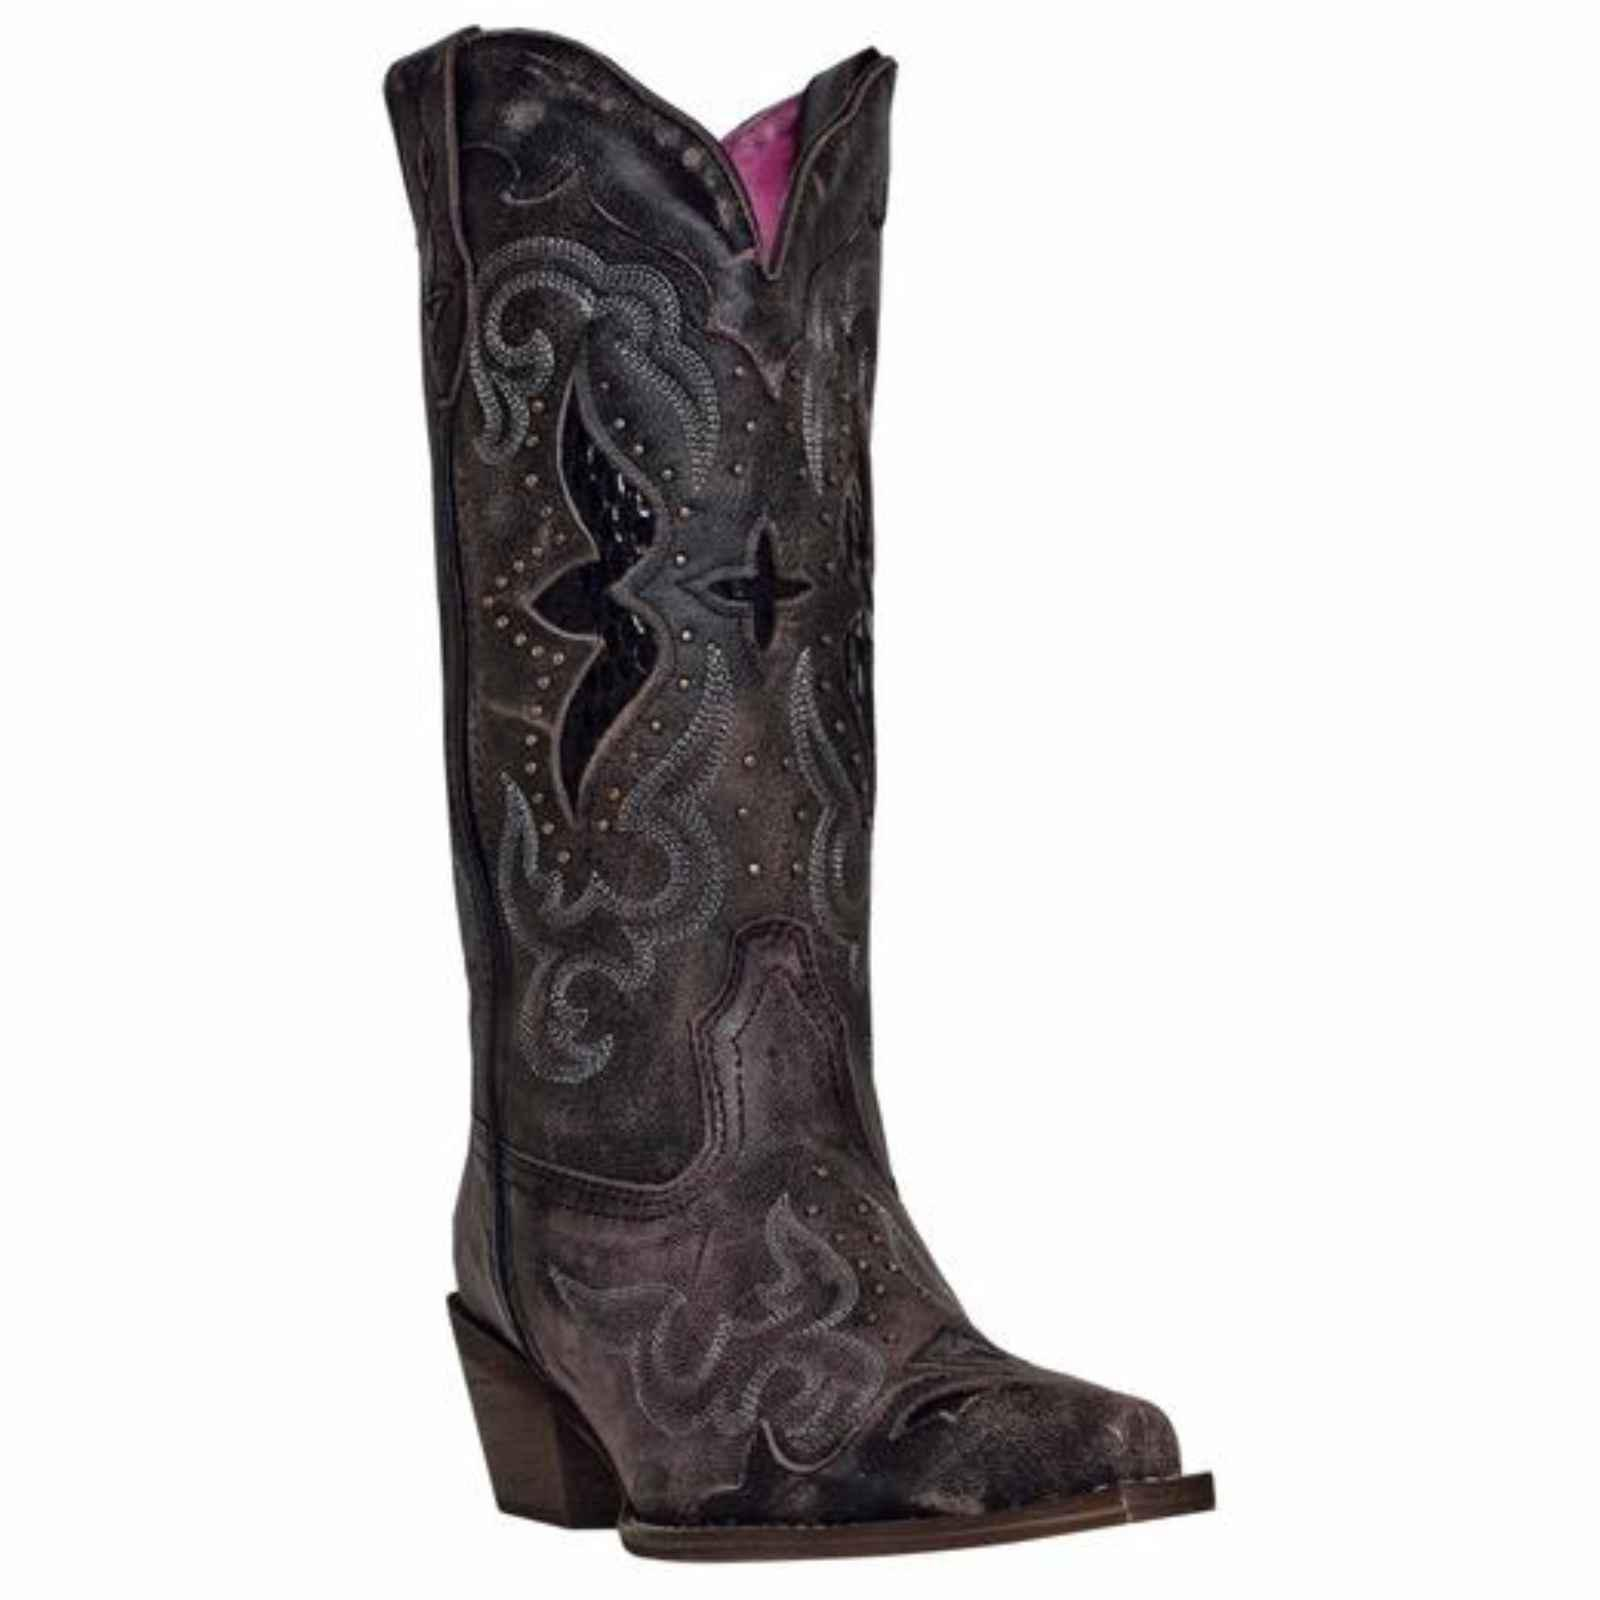 Laredo Womens Black/Tan All Leather Lucretia 13in Snip Toe Cowboy Boots 9 W